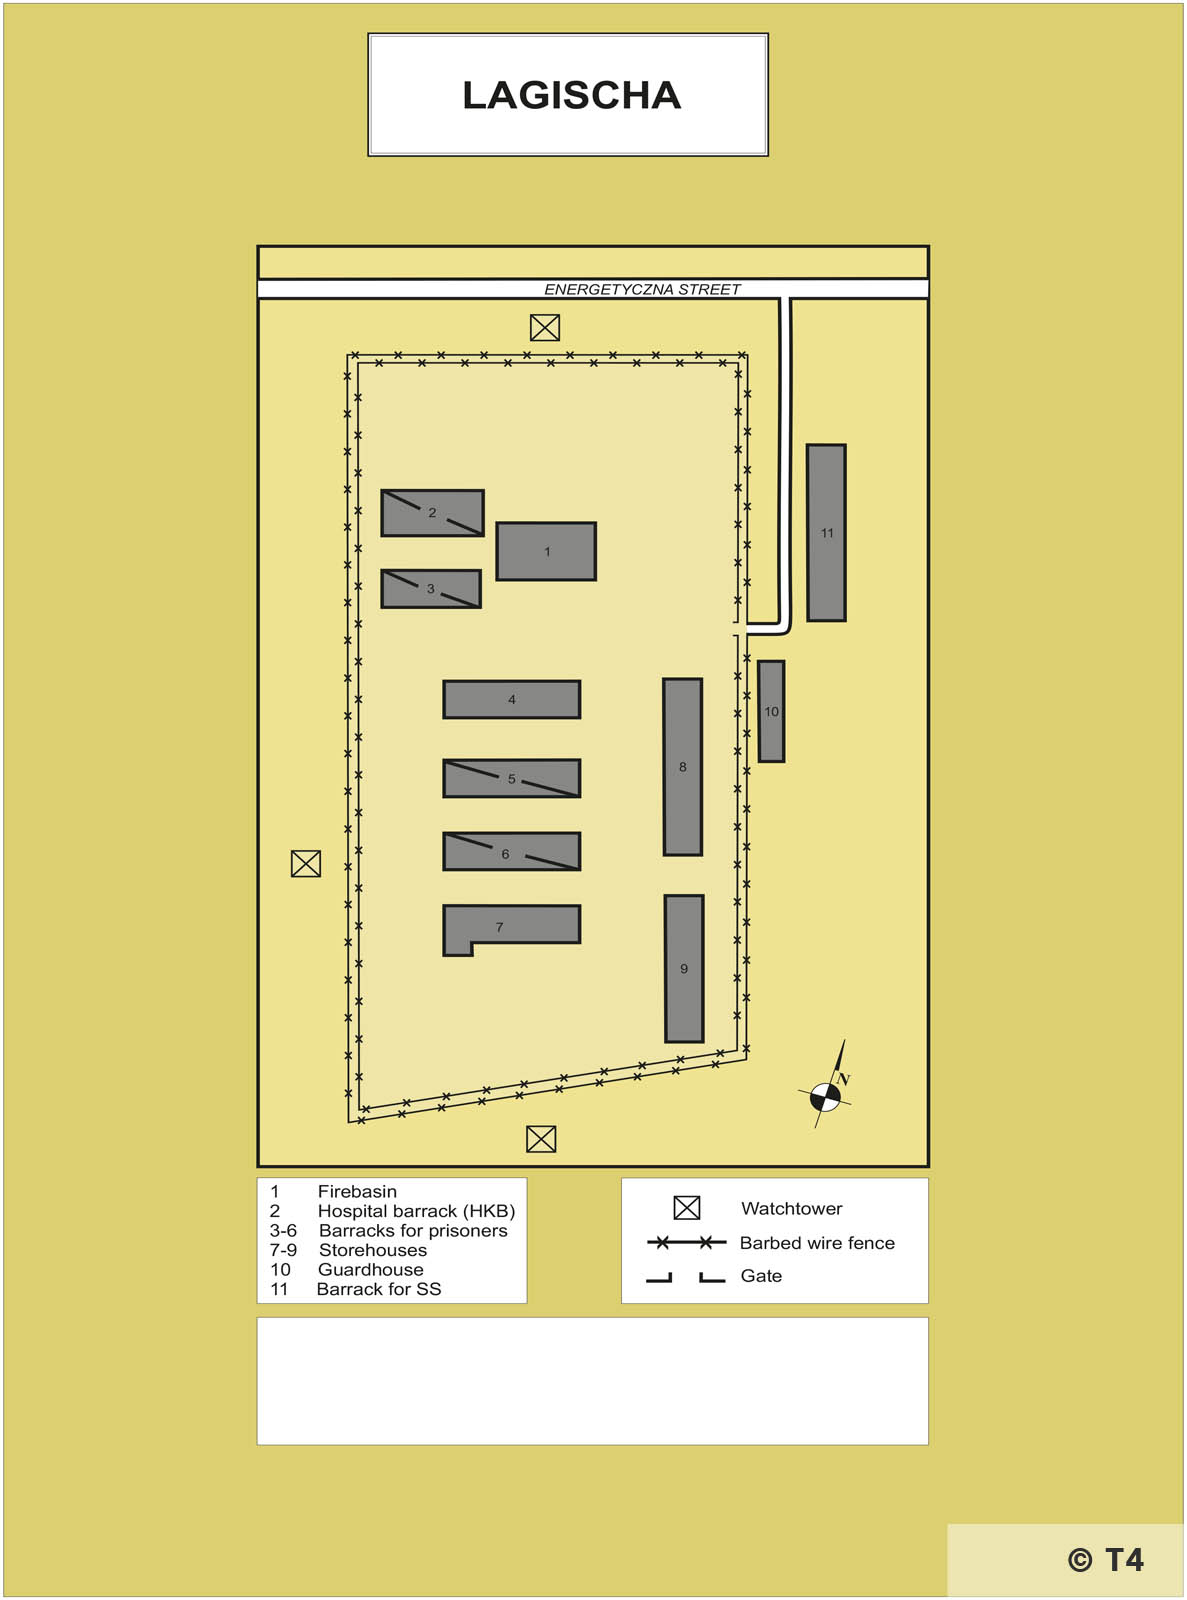 Map of former sub camp Lagischa. T4